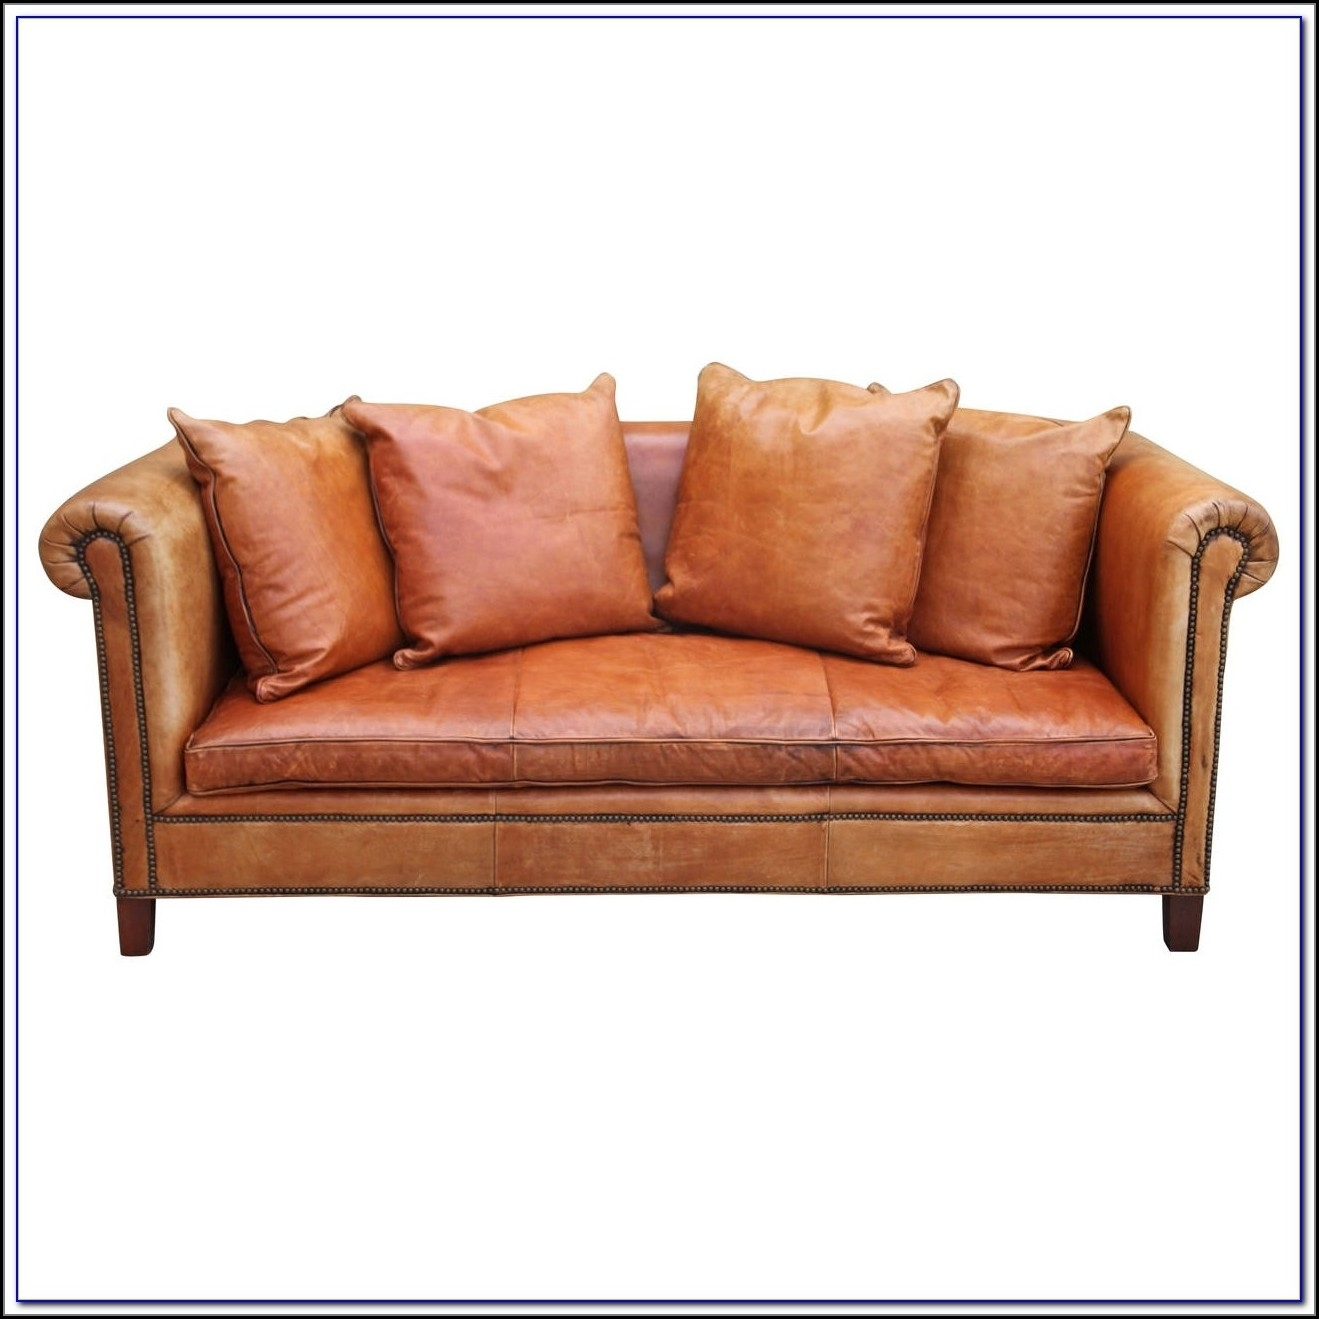 Ralph Lauren Leather Sofa Craigslist – Sofa : Home Furniture Ideas Within Craigslist Leather Sofas (Image 7 of 10)